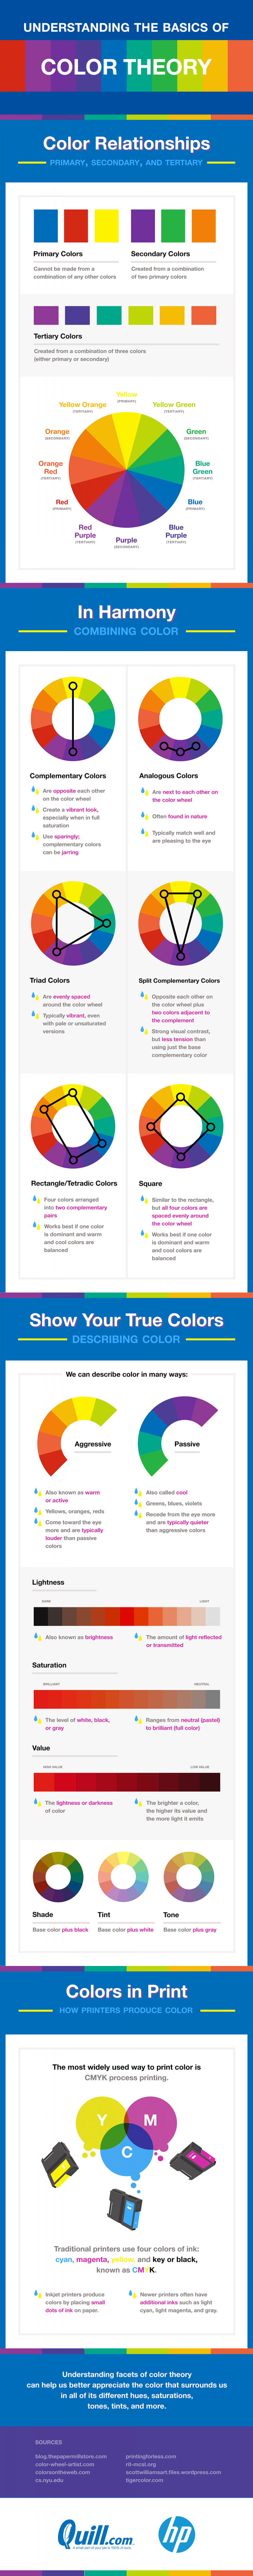 Basics Of Color Theory understanding the basics of color theory | visual.ly